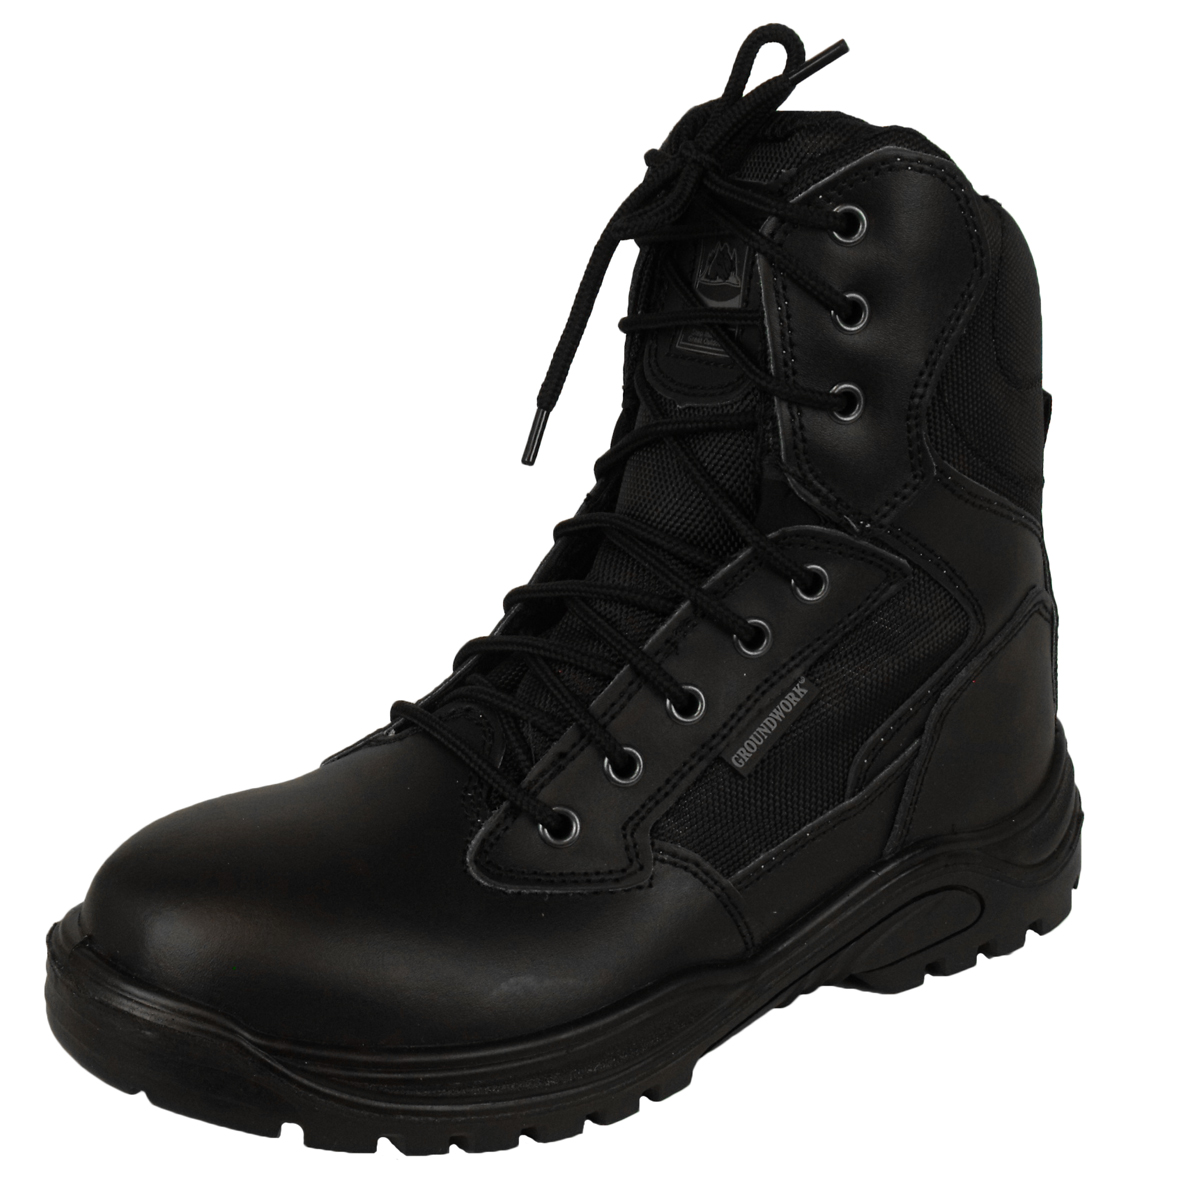 Mens Leather Combat Tactical Safety Ankle Boots Security Military Police Boot | EBay